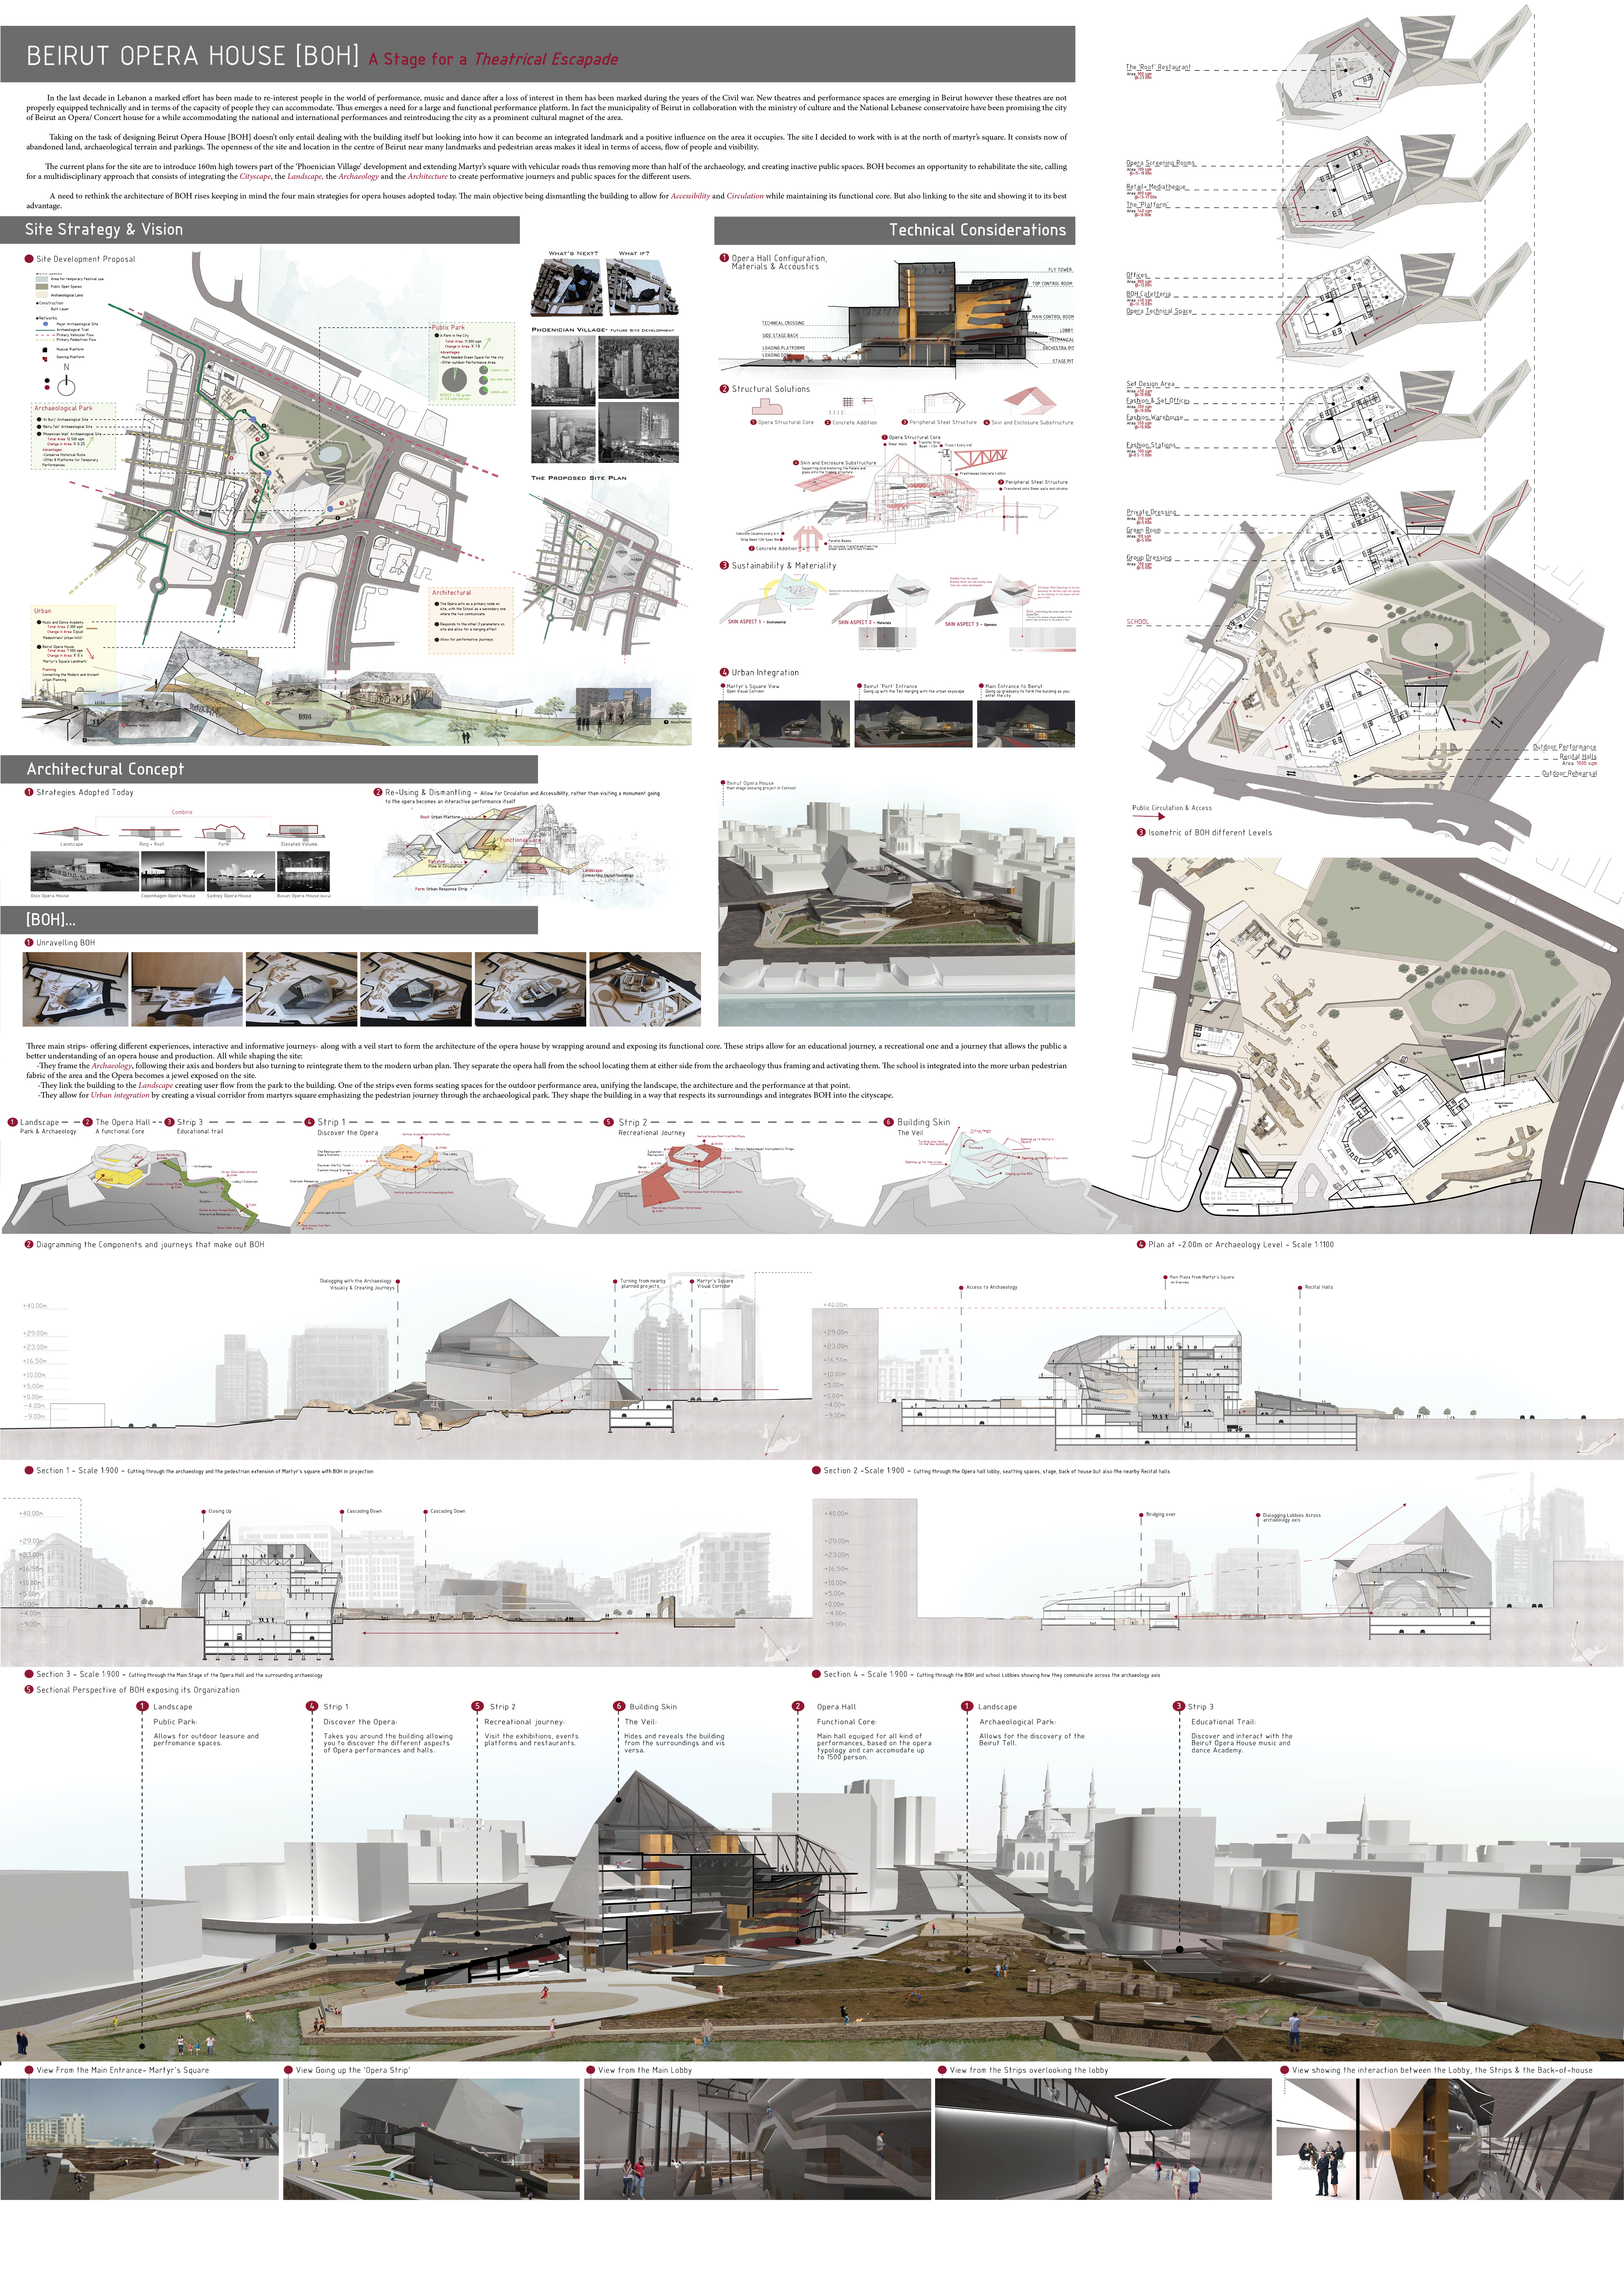 9th cycle of omrania csbe student award for architectural design